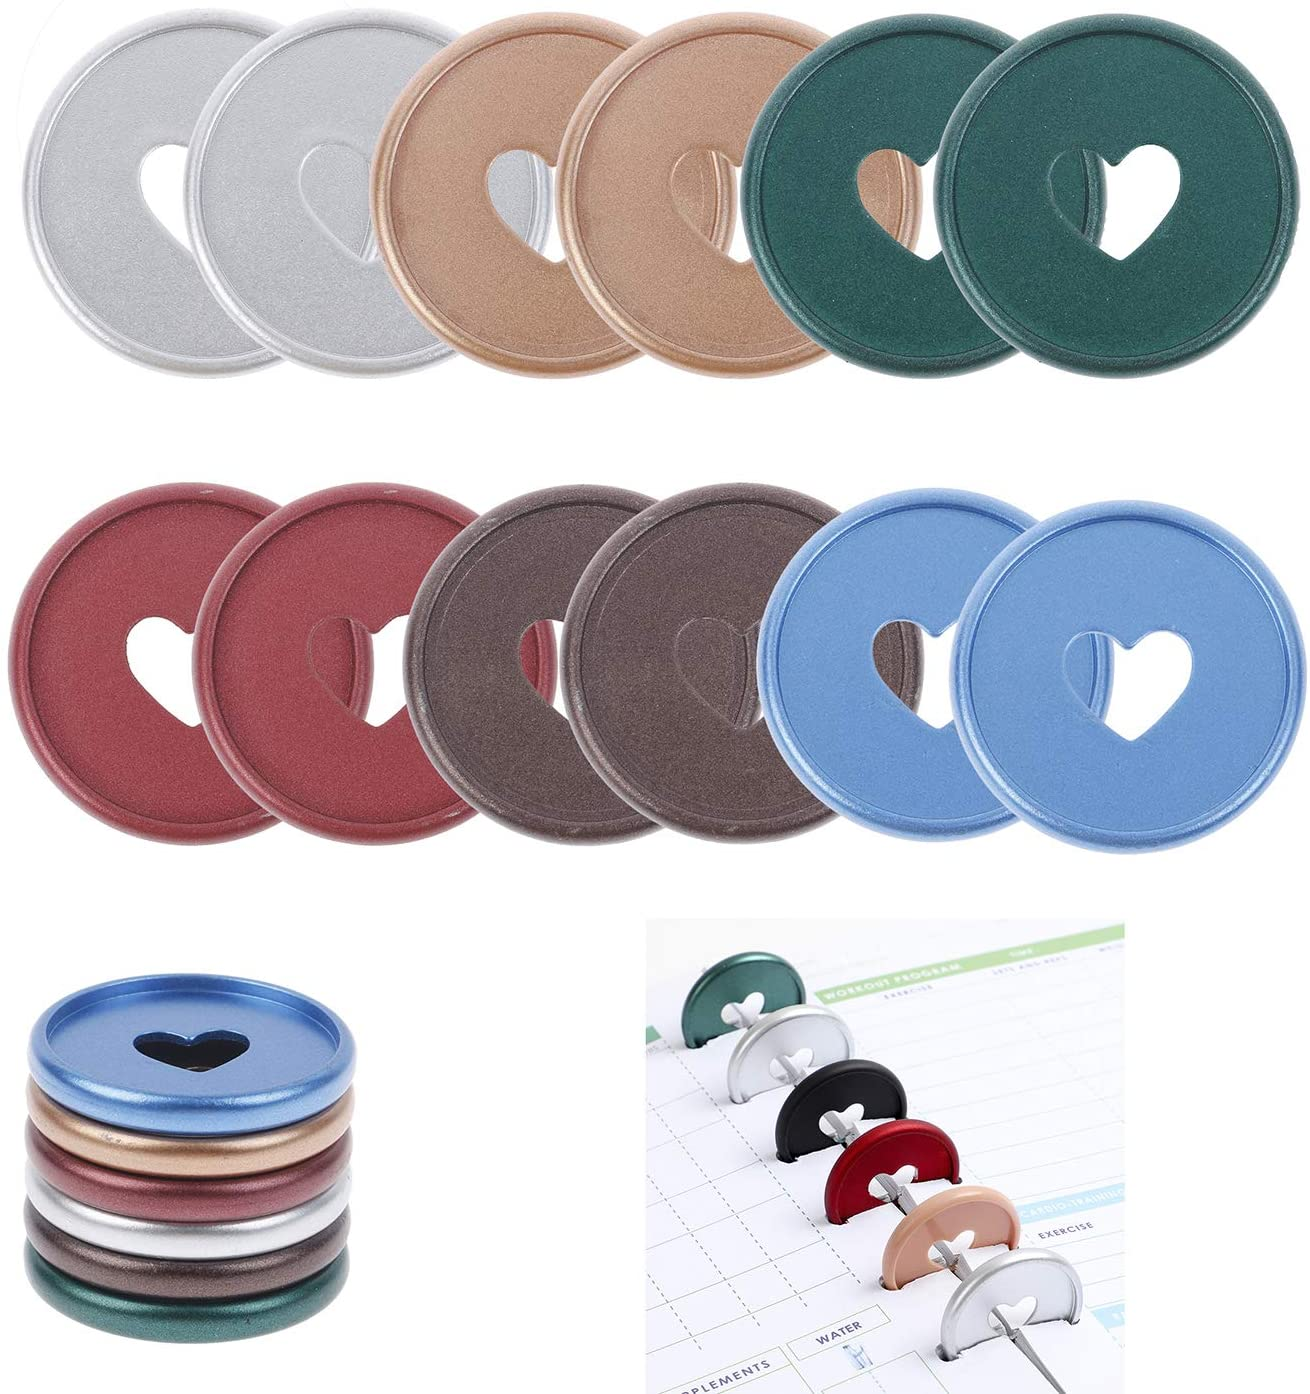 Xgood 90 Pieces Binding Discs Plastic Book Binding Discs Colorful Expansion Discs Binding Ring Discs for Add Extra Notes Pages DIY Notebooks Planners,6 Colors